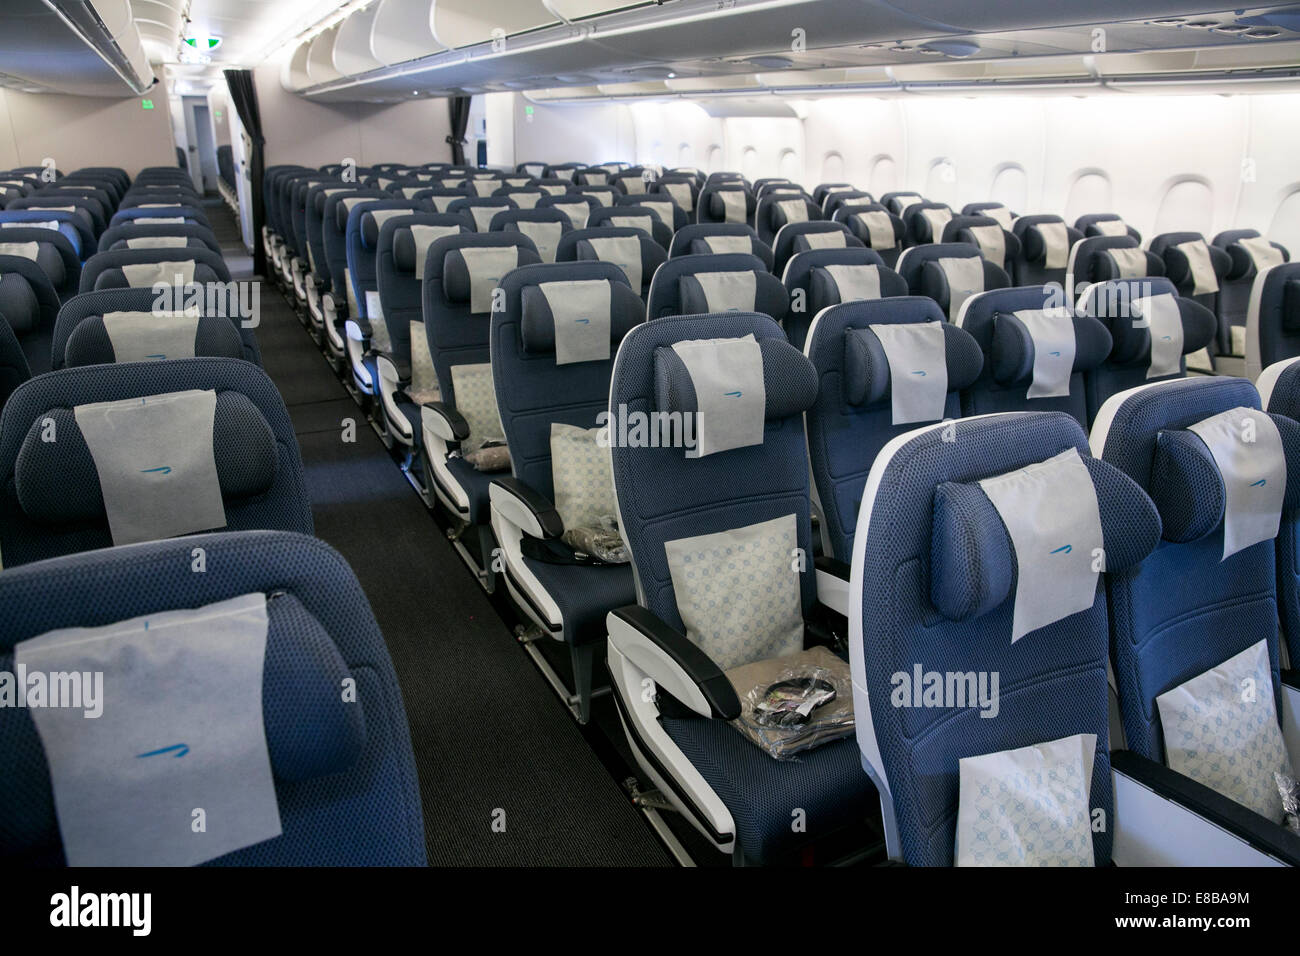 Dulles International Airport, Virginia, USA. 2nd October, 2014. The World Traveller (coach) section of British Airways - Stock Image